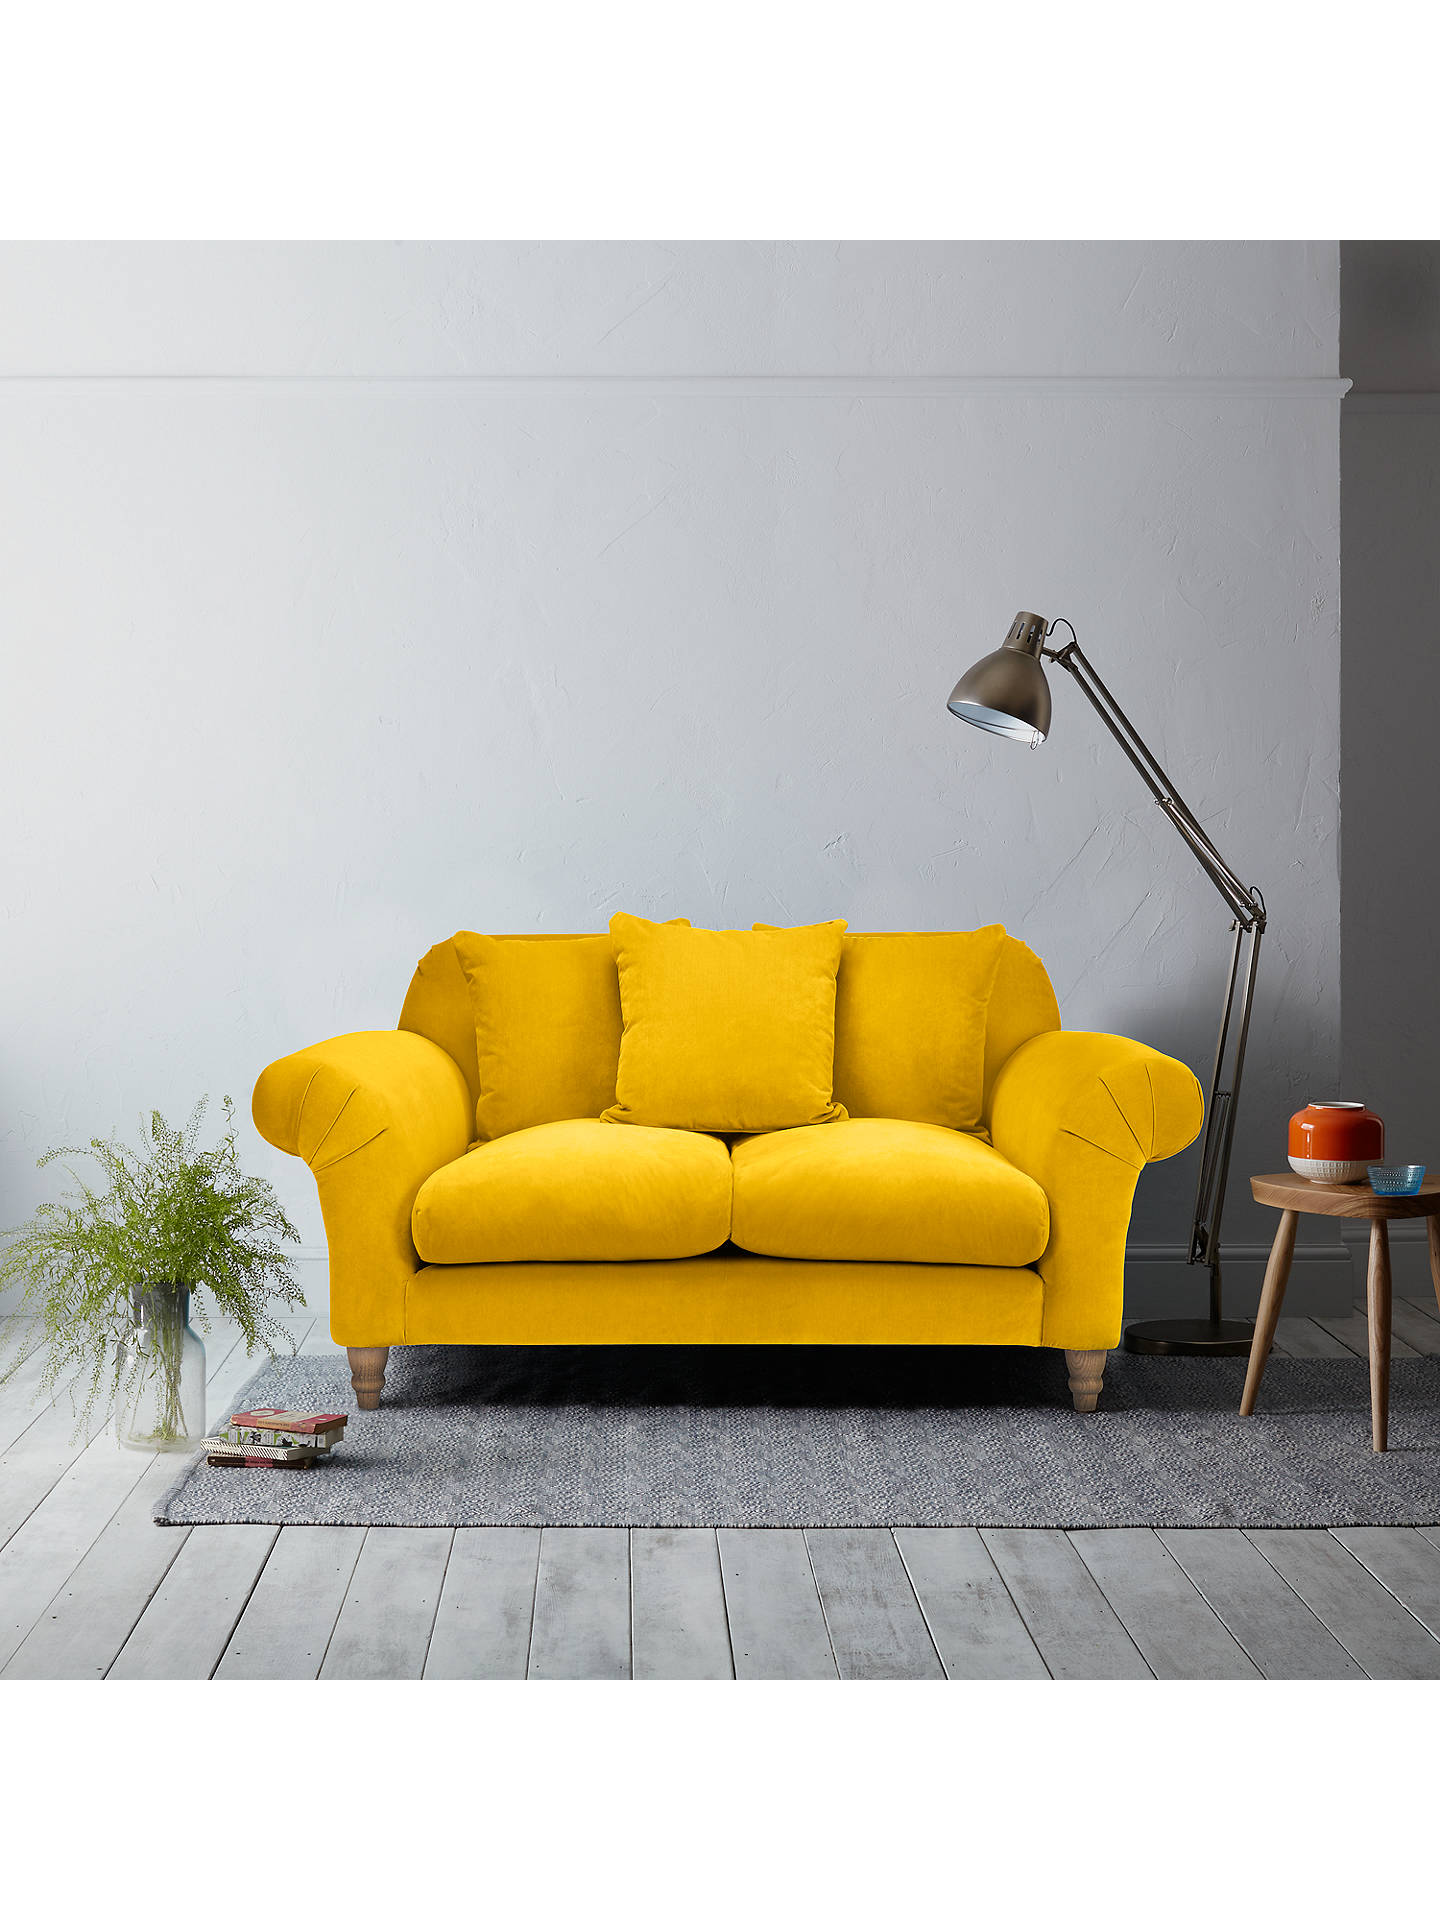 Buy Doodler Small 2 Seater Sofa by Loaf at John Lewis in Bumblebee Clever Velvet, Light Leg Online at johnlewis.com